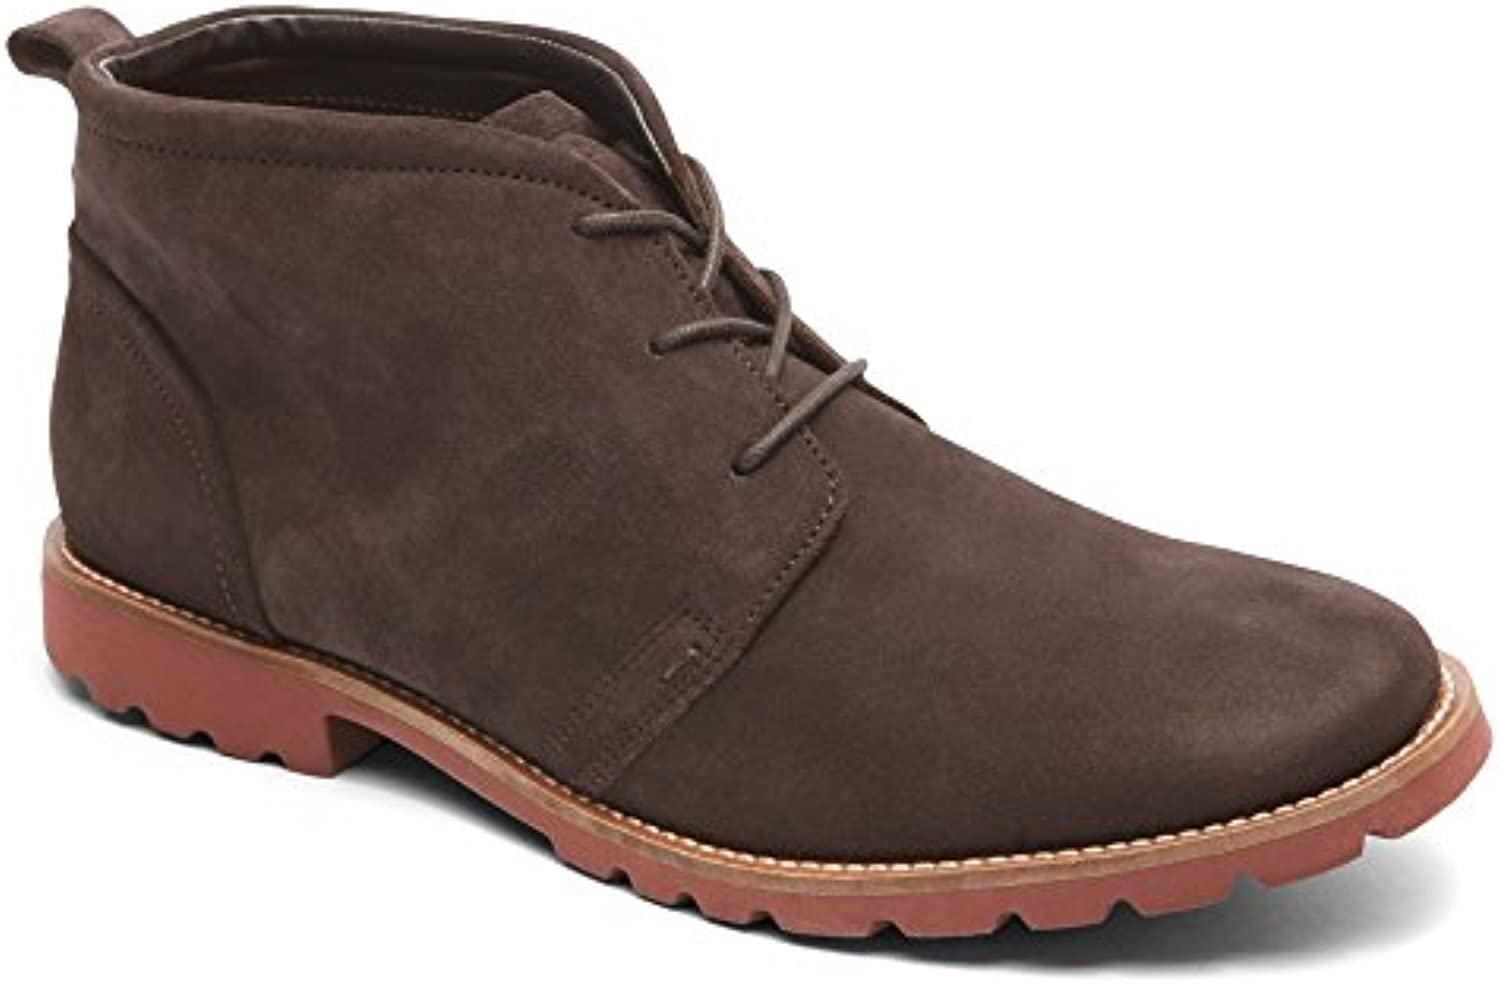 Rockport Men's Charson Lace Up Chukka Boot